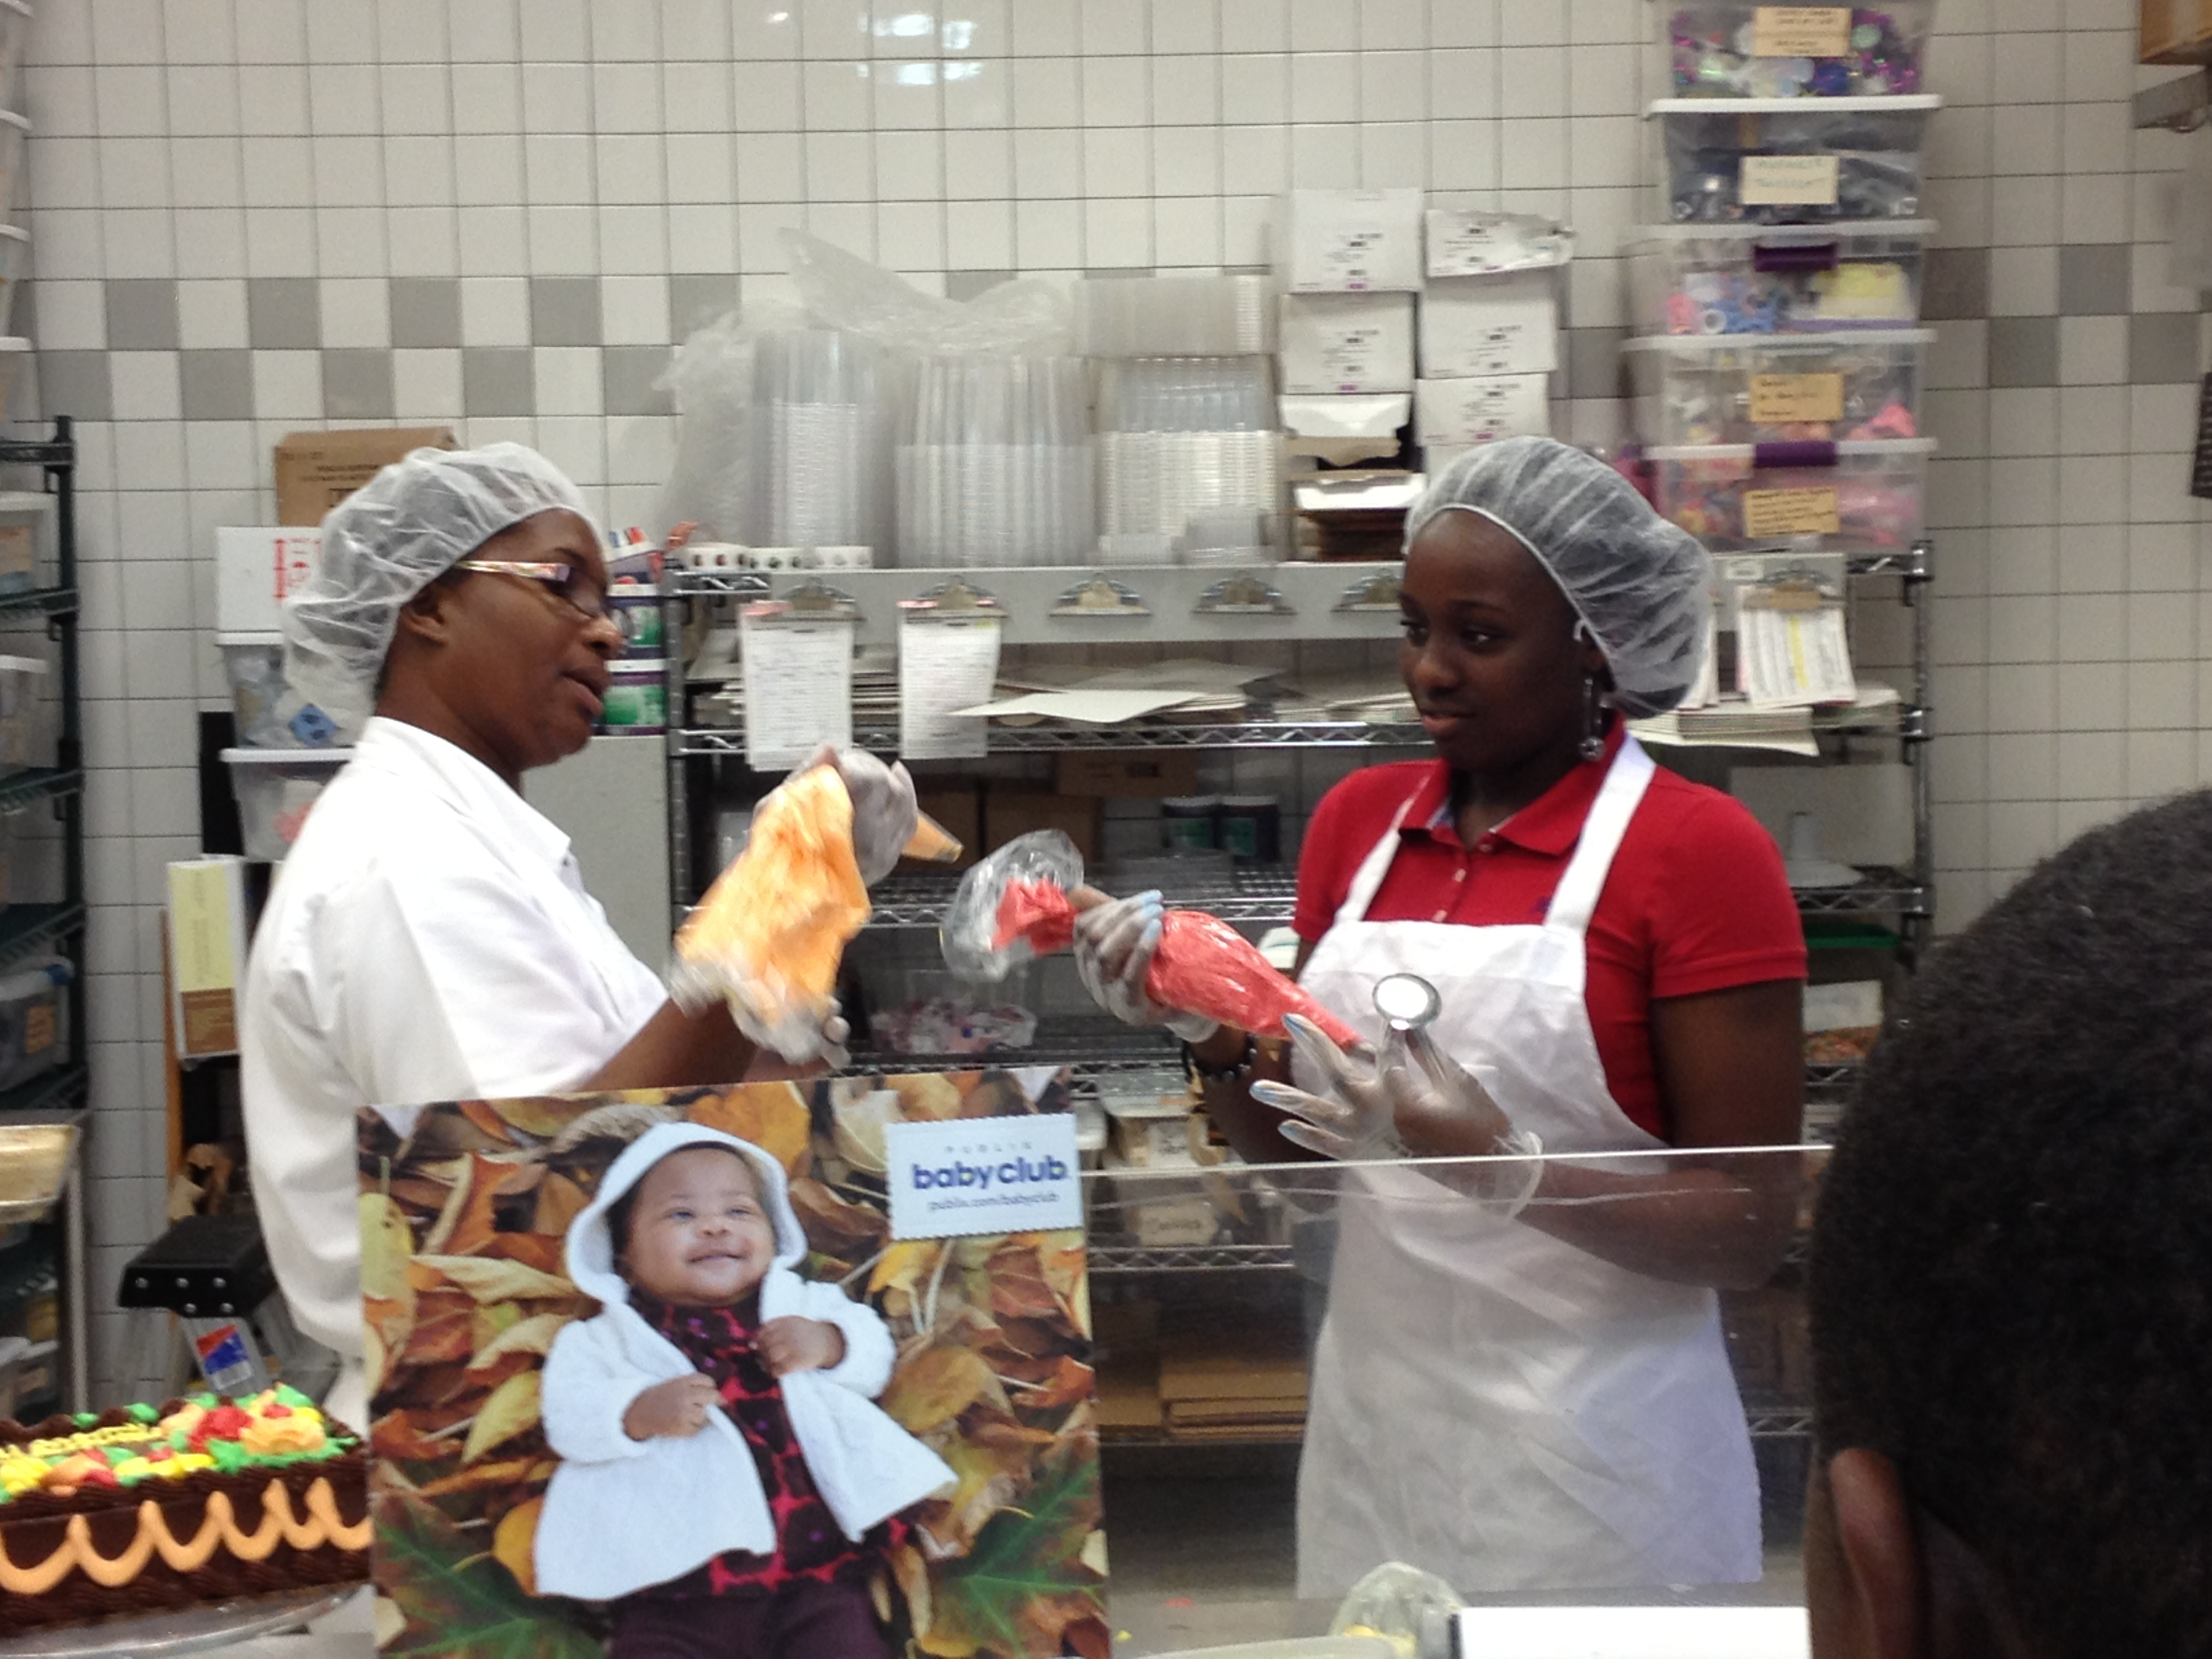 Northport culinary students enjoys interactive trip to grocery store